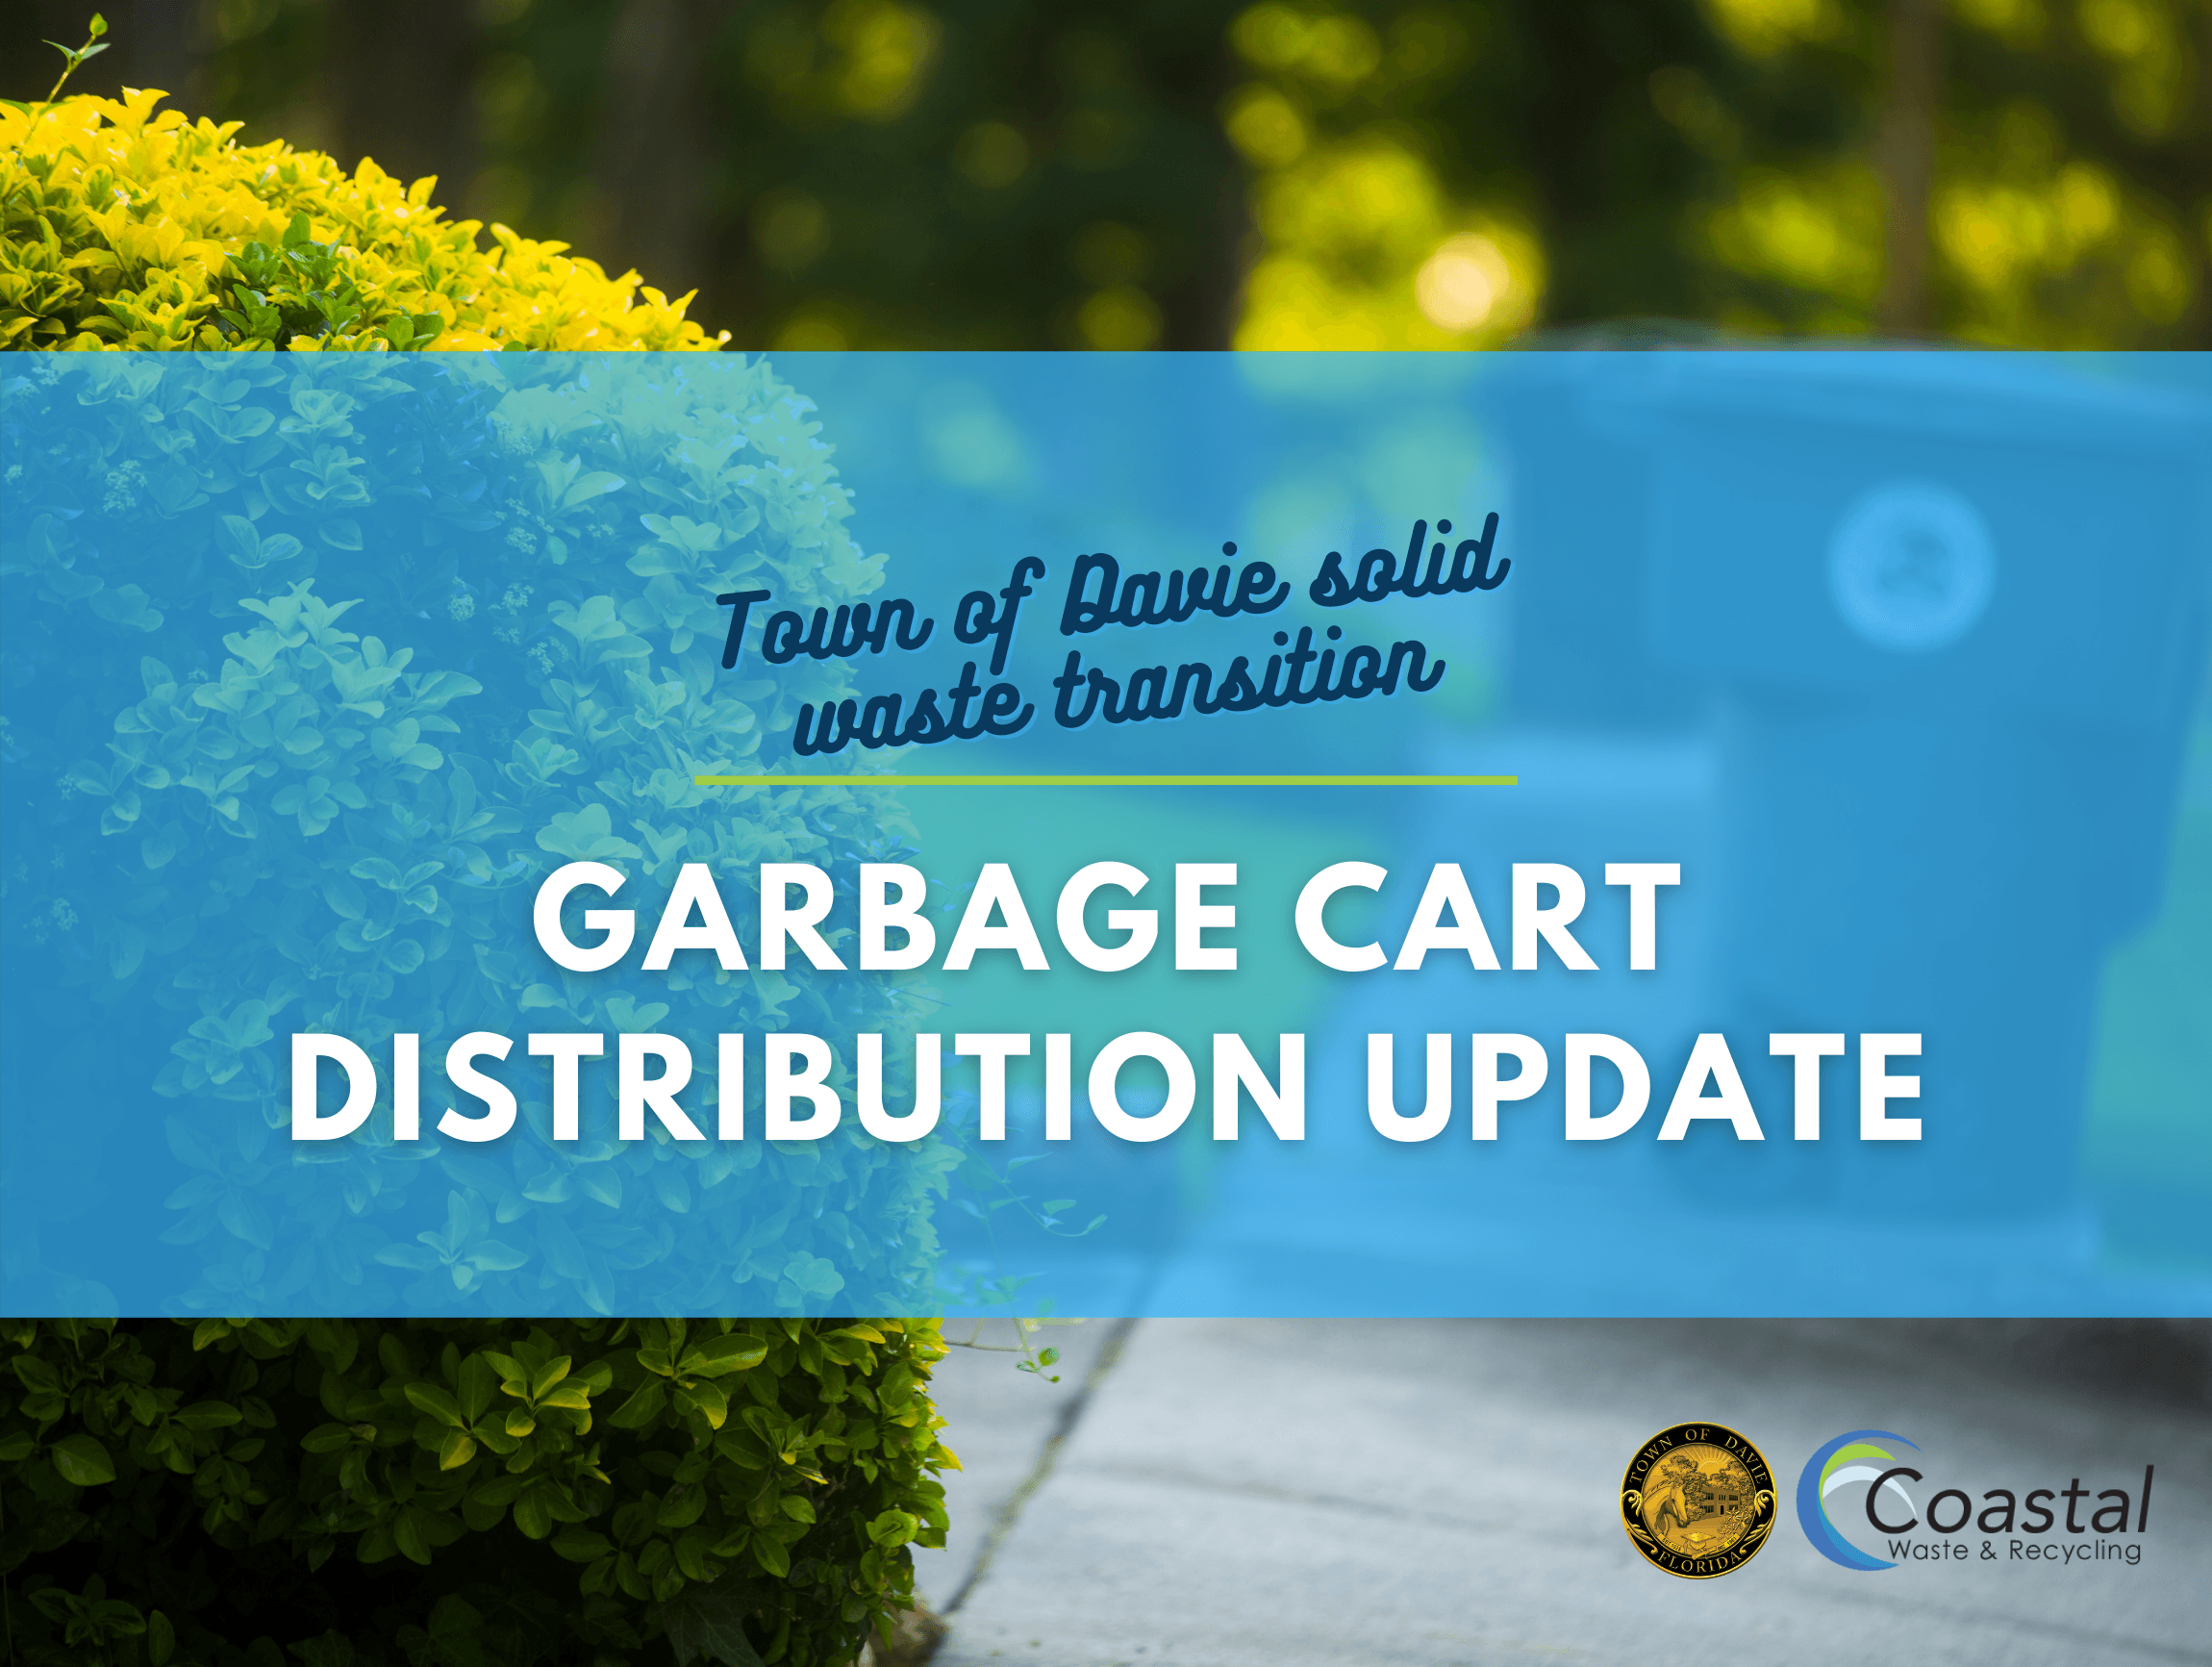 Town of Davie Municipal Solid Waste Transition Garbage Cart Distribution Update